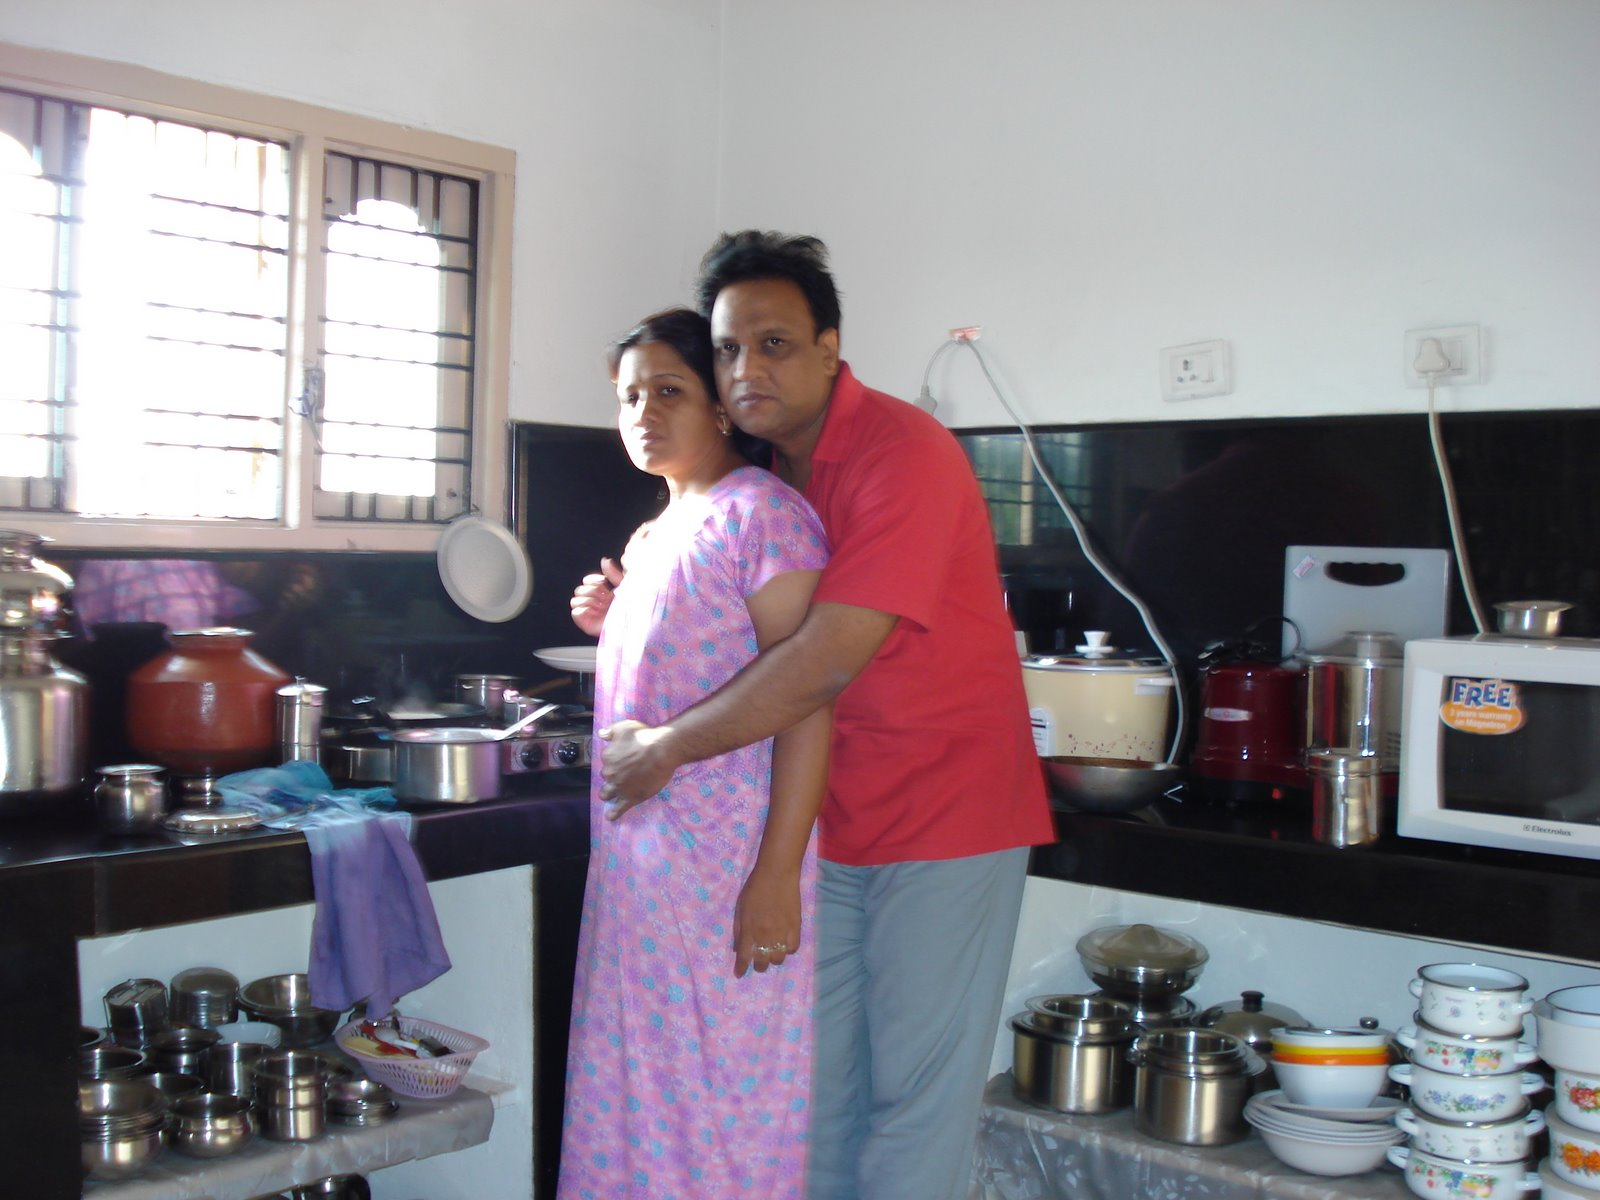 Bhabhi ki kitchen me masti - 5 4